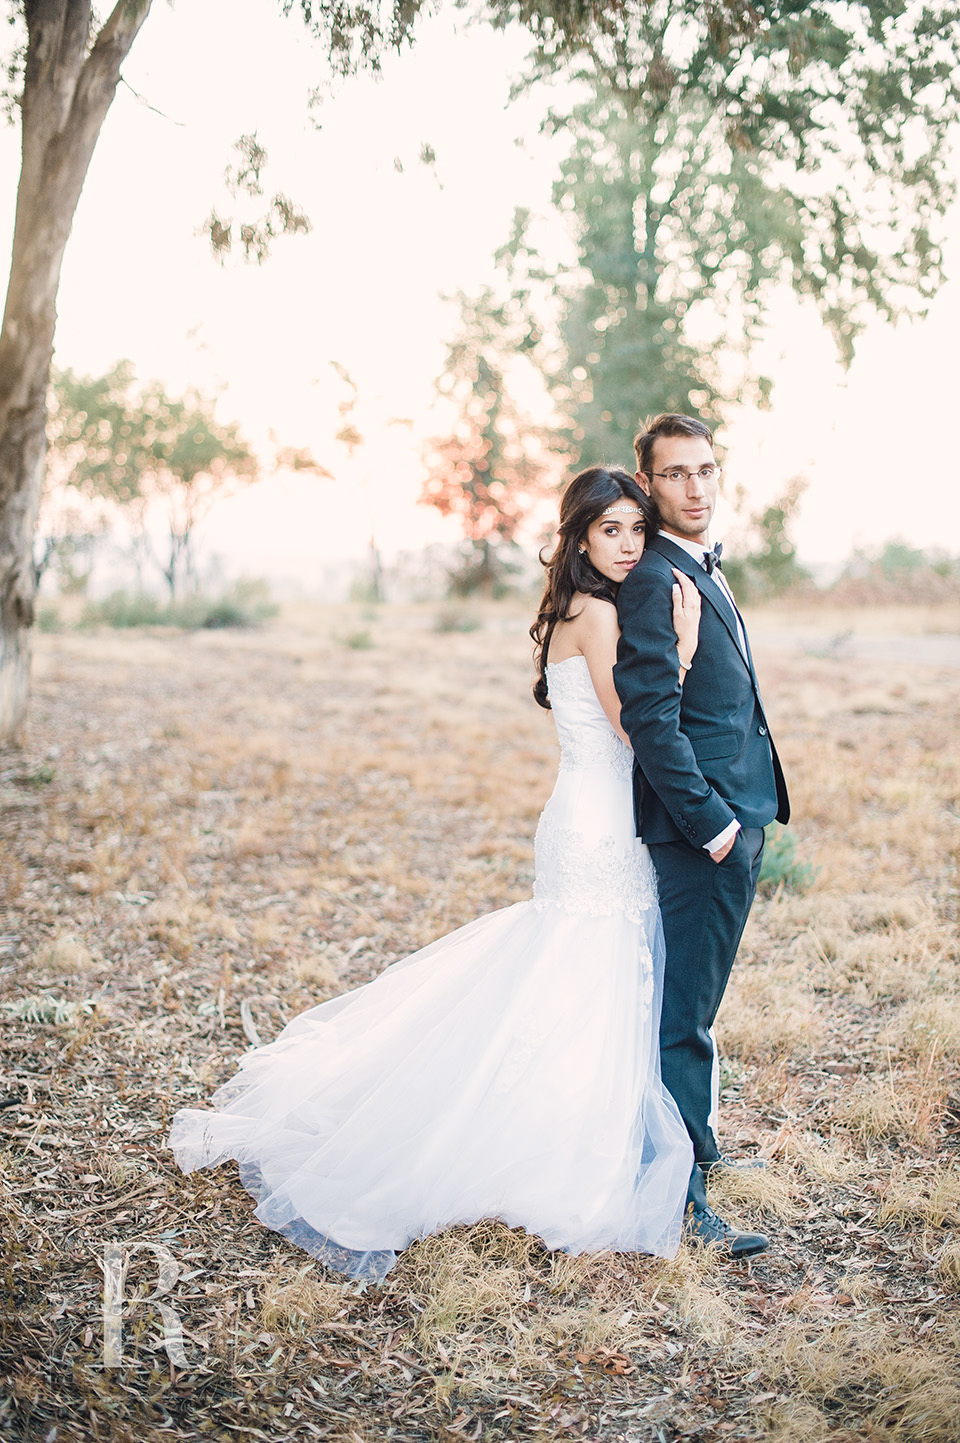 RYAN PARKER PHOTOGRAPHY_WEDDINGS_PRETORIA_ROSEMARY HILL_M&N -0526.jpg